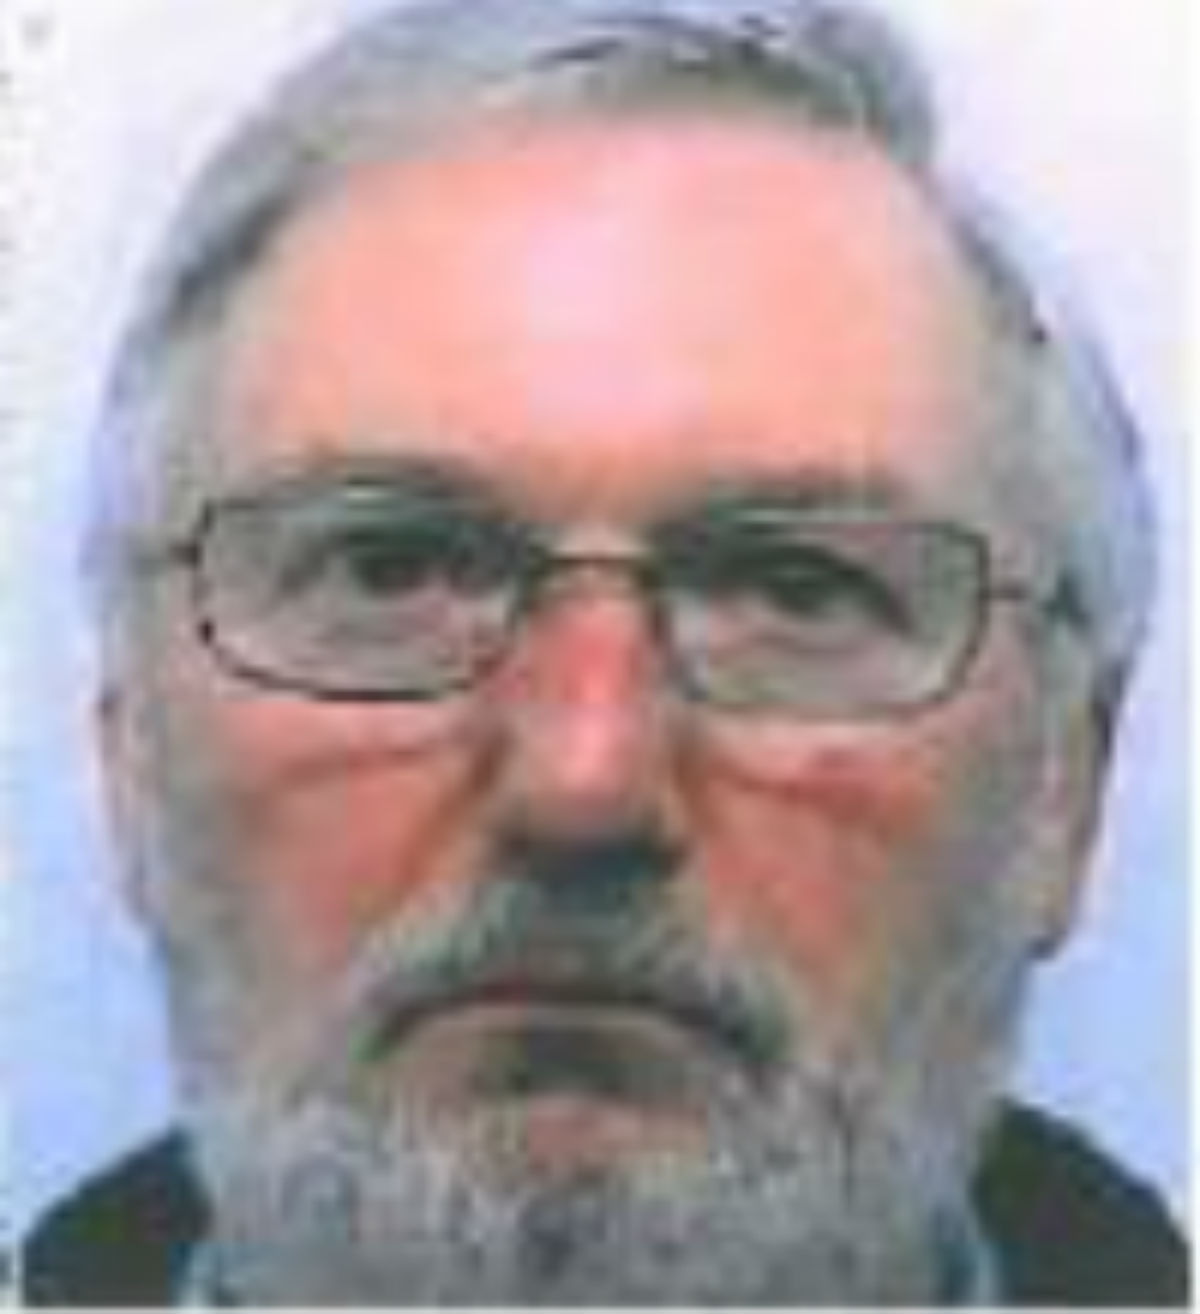 Missing man Tony Ashley. Police believe he may be in the Whitby area